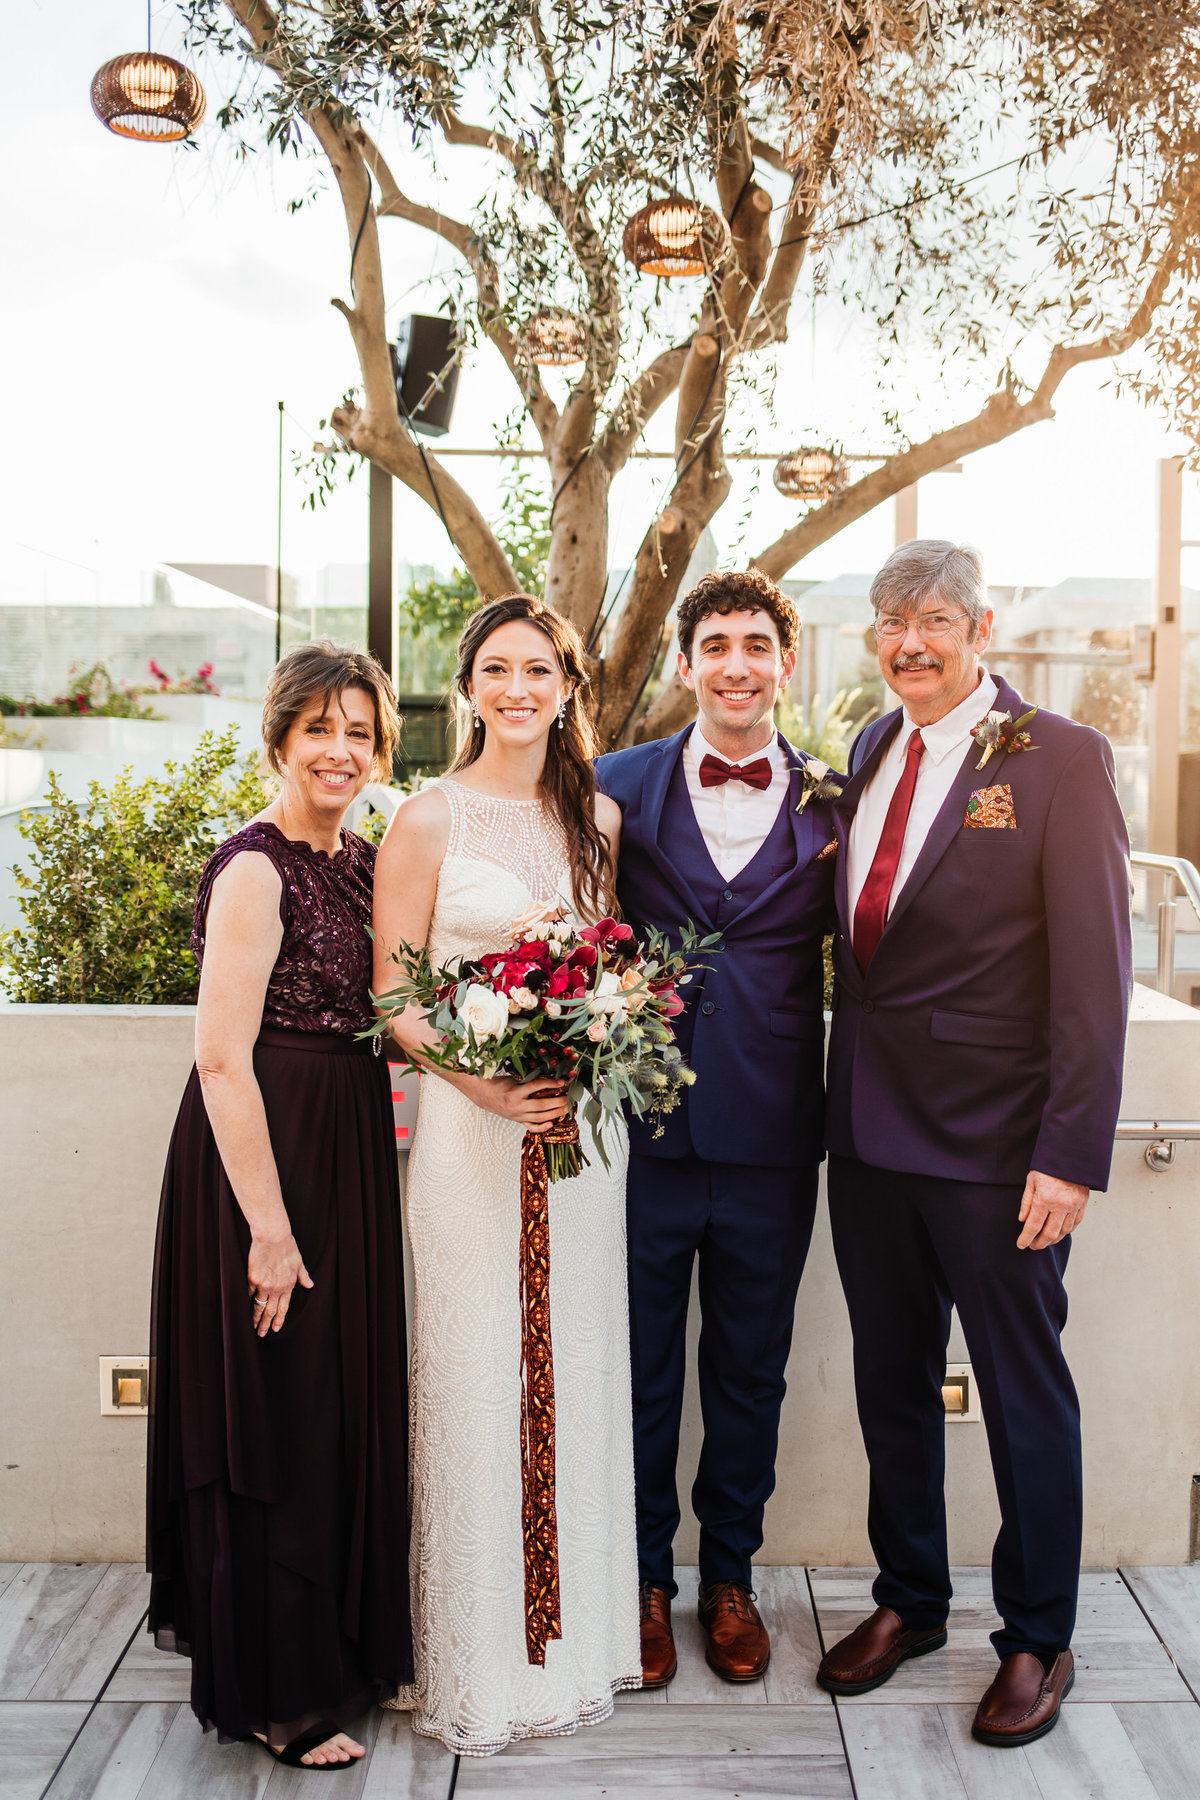 family-photos-socal-wedding-photographer-erin-marton-photography-11